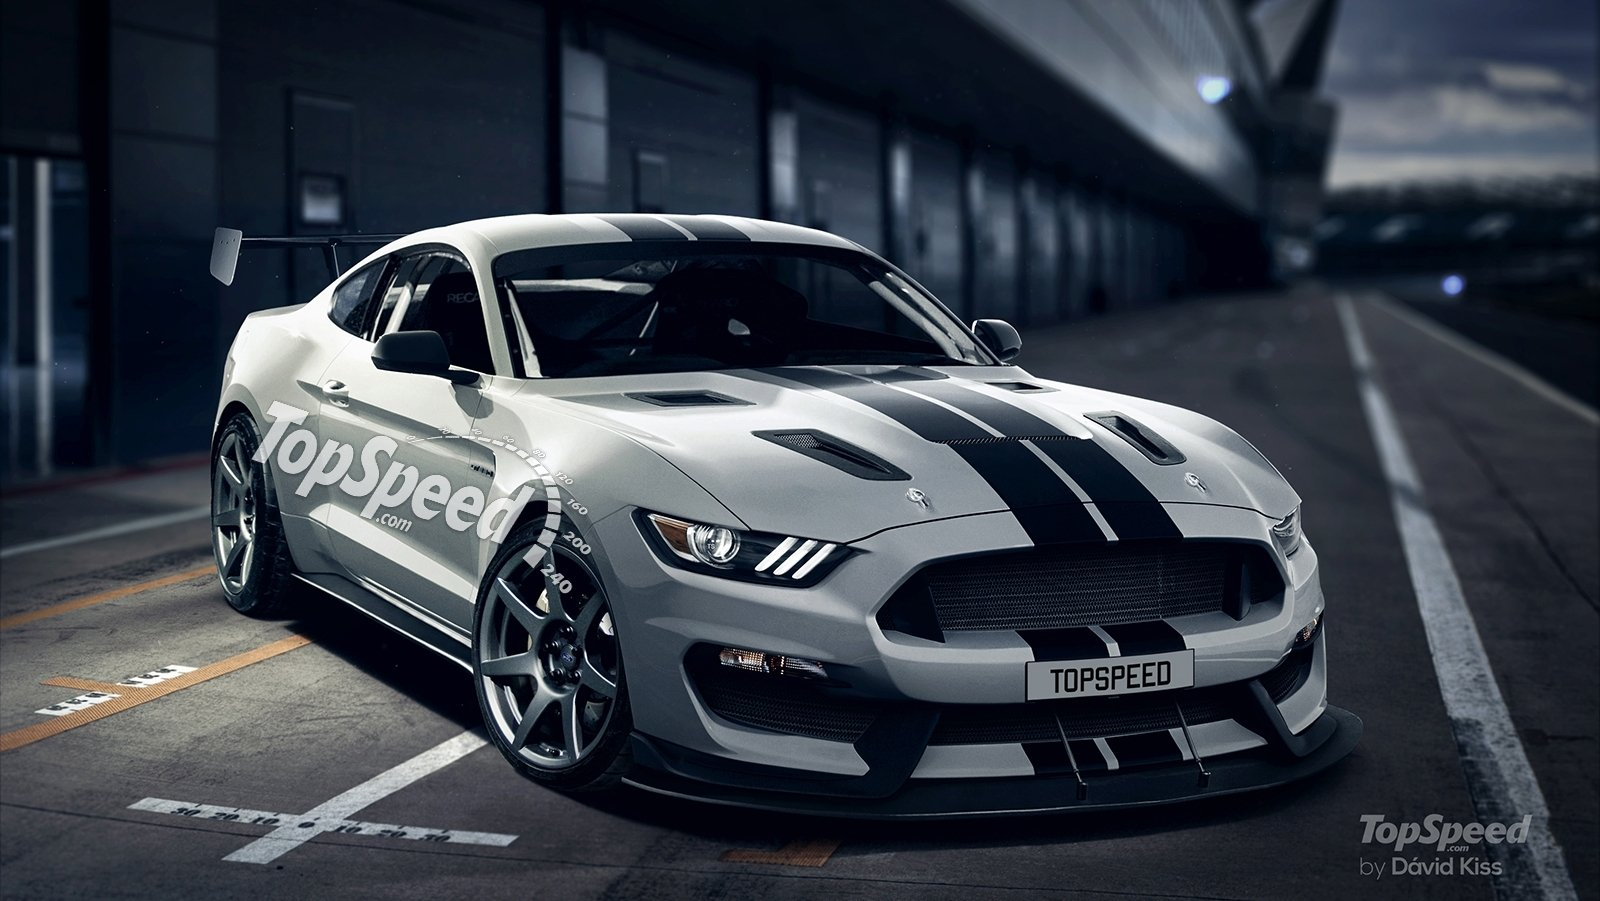 2016 ford shelby gt350r c mustang race car picture. Black Bedroom Furniture Sets. Home Design Ideas